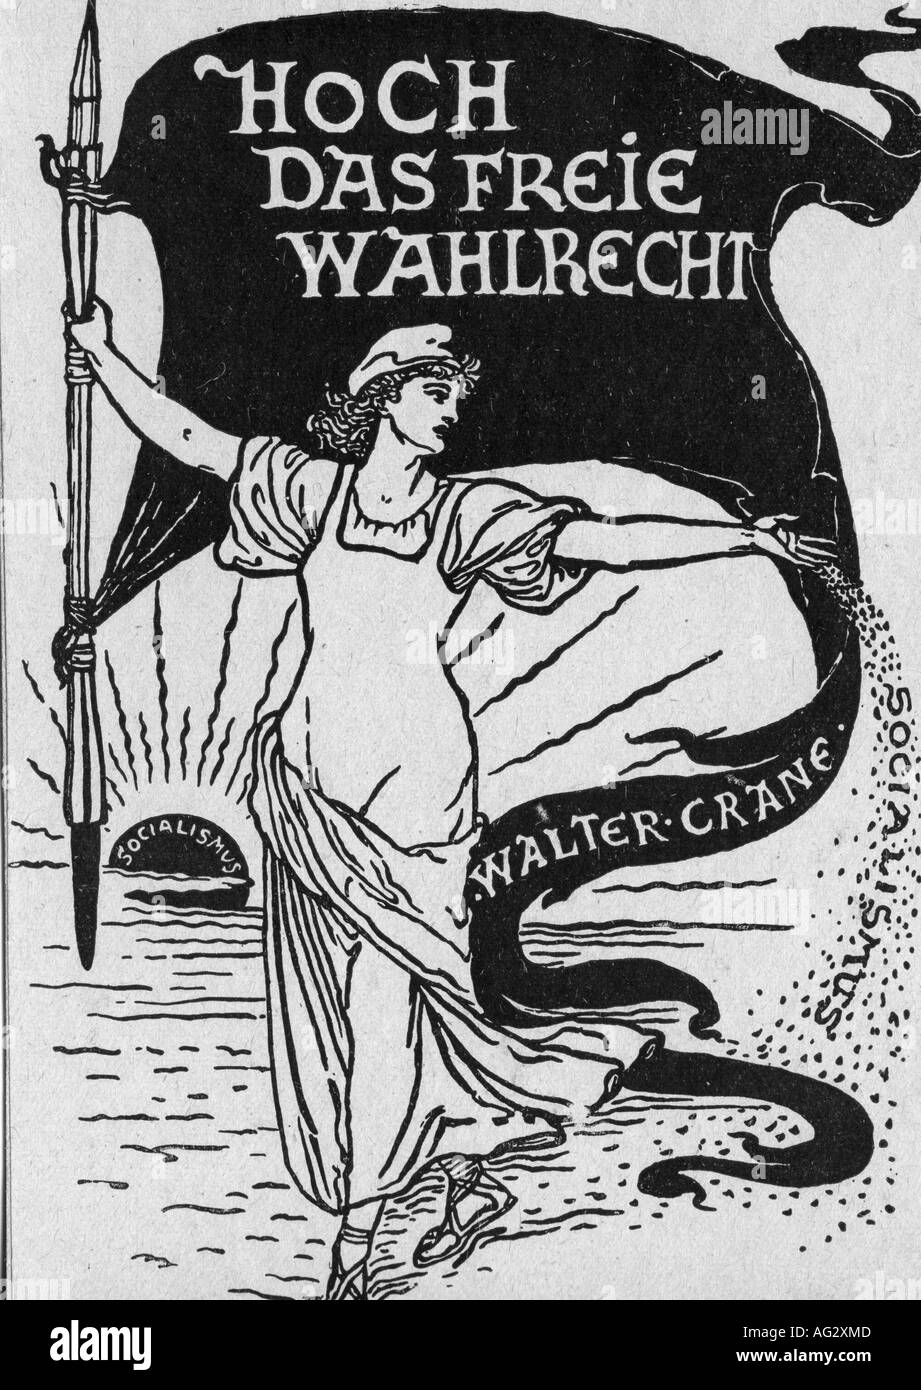 geography/travel, Germany, politics, voting right, propaganda, drawing by Walter Crane (1845 - 1915), socialism, 19th century, , Additional-Rights-Clearances-NA - Stock Image